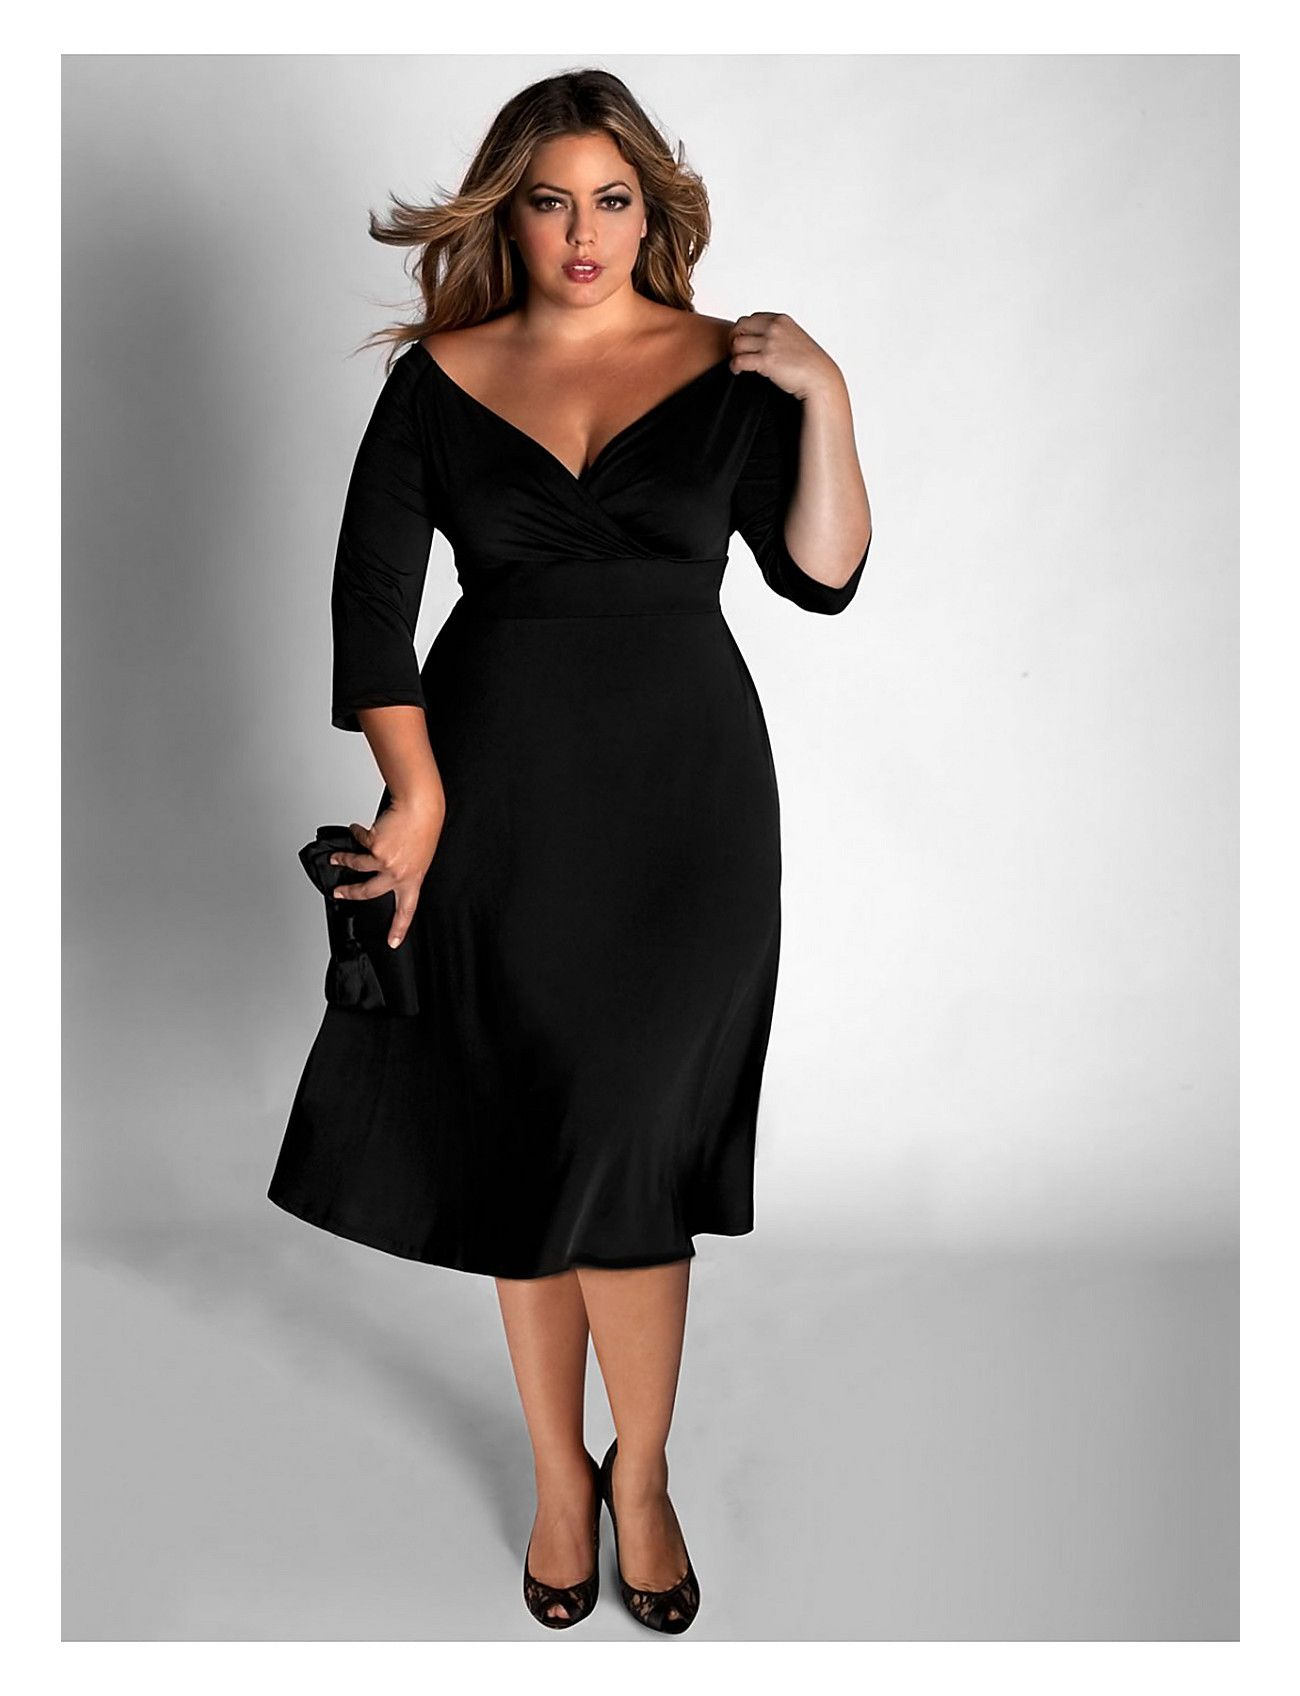 Lane Bryant formal evening Dresses | Prom Dress Ideas